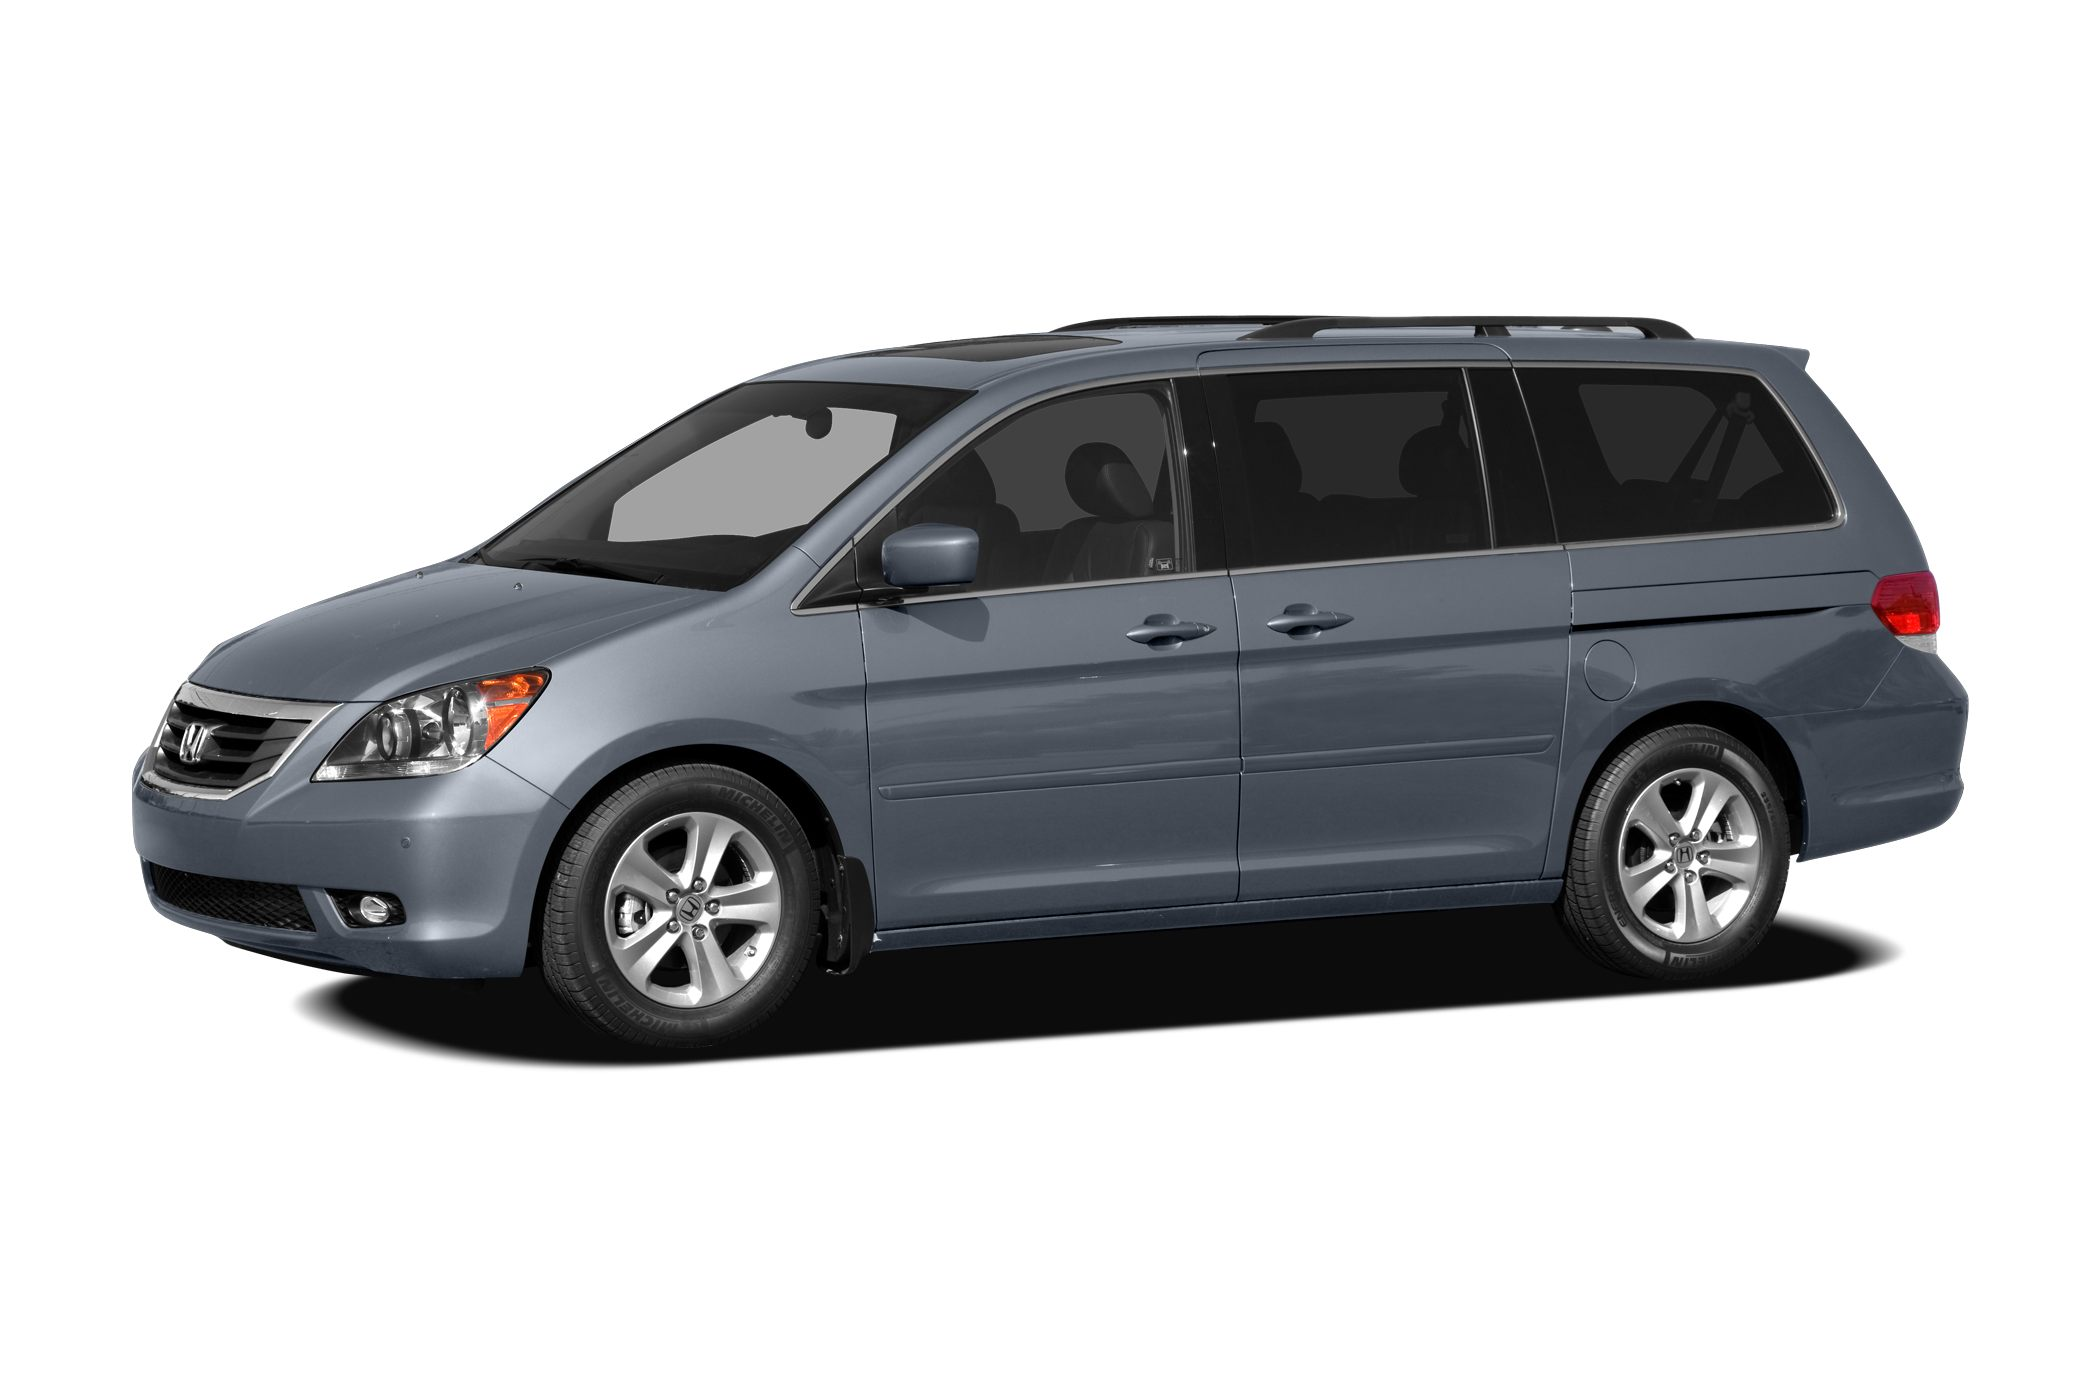 2009 Honda Odyssey EX-L Minivan for sale in Killeen for $17,700 with 56,415 miles.